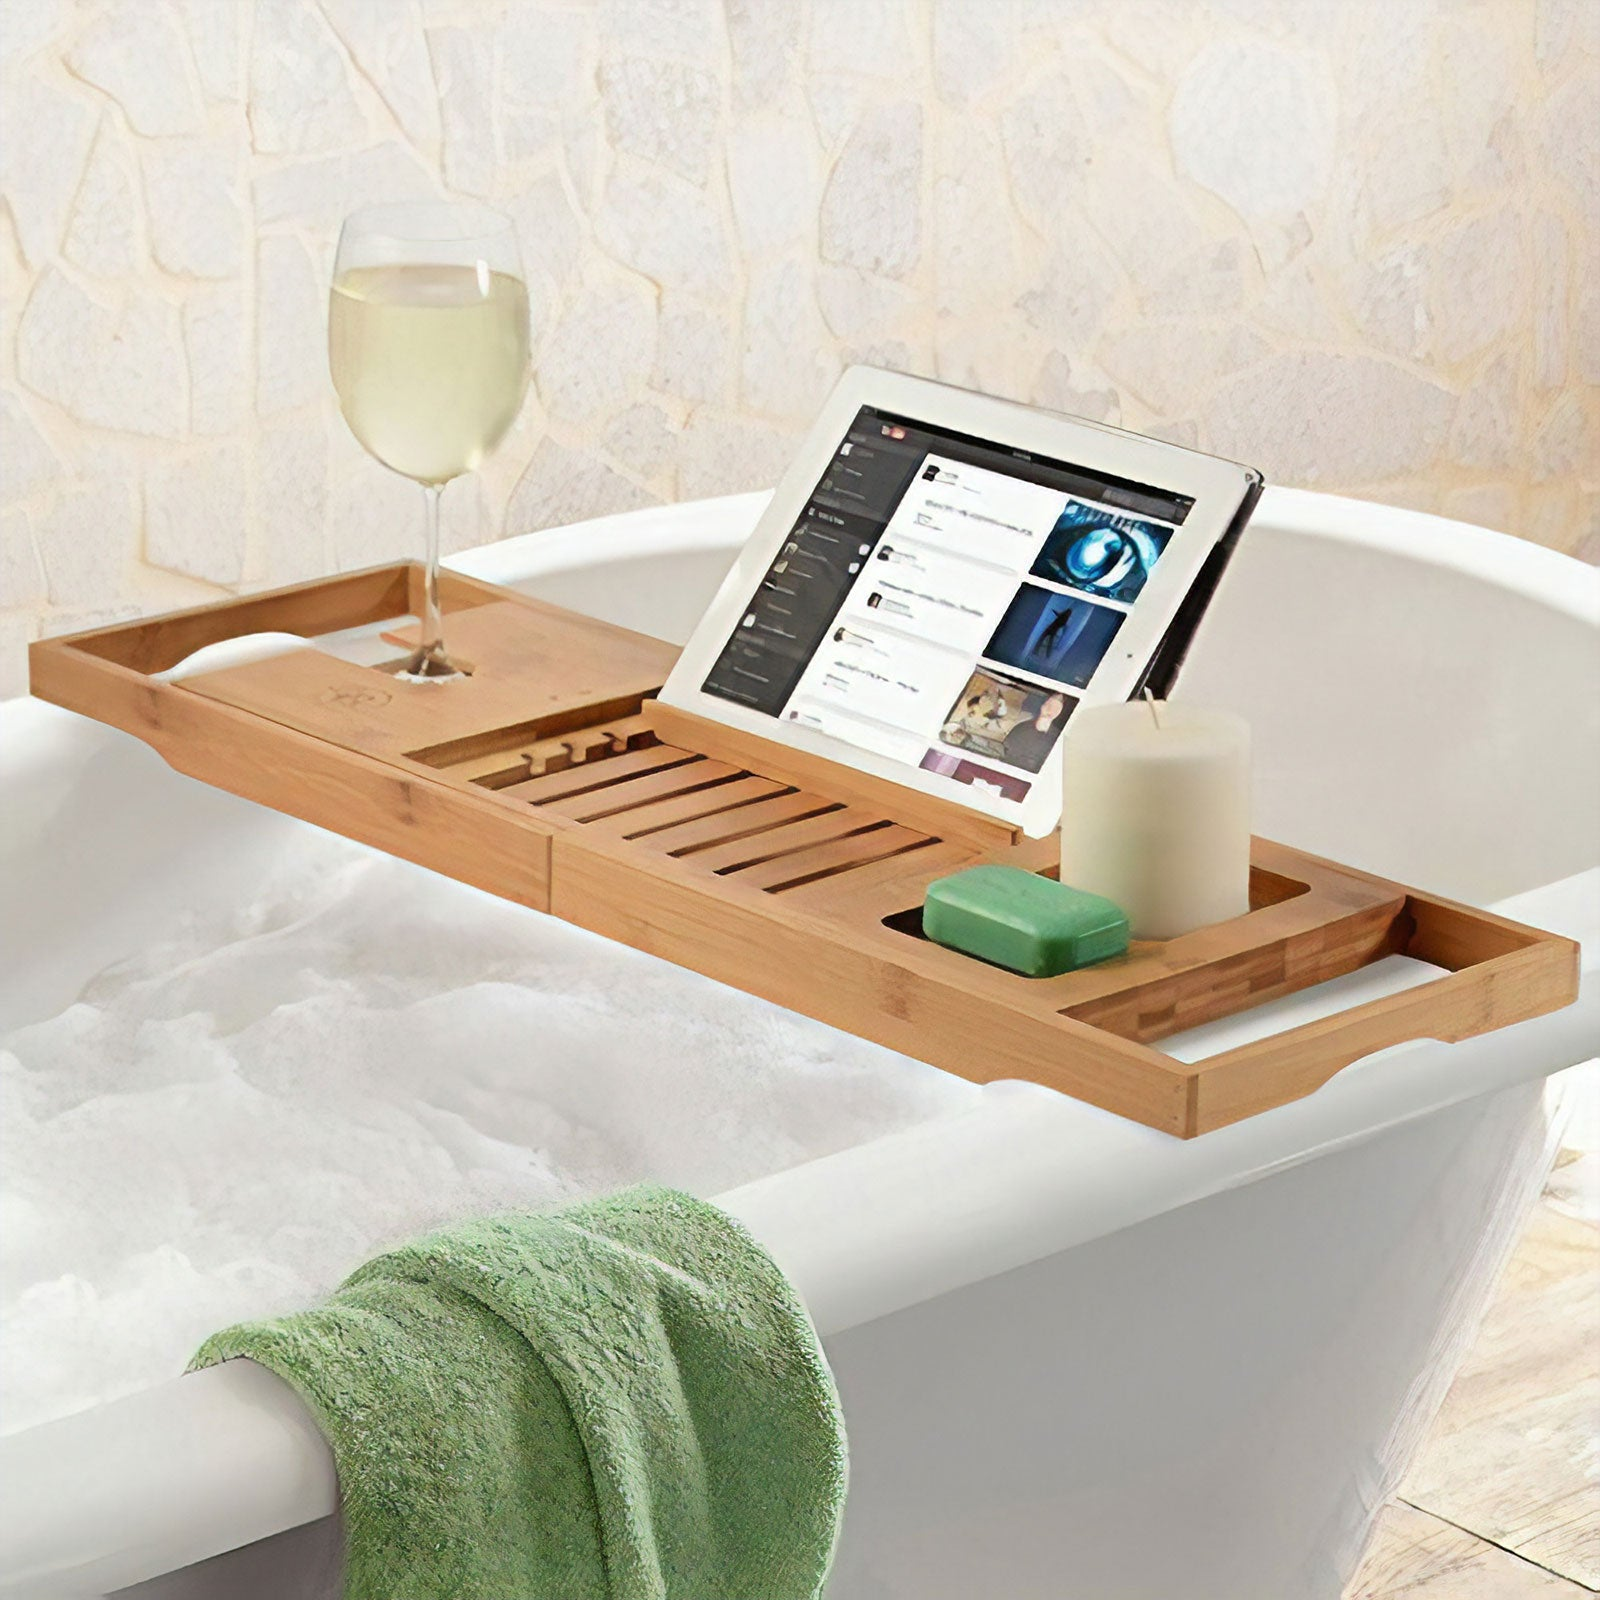 Bamboo Bathtub Caddy Extendable Slide Tray Holder - Bambusi by Belmint